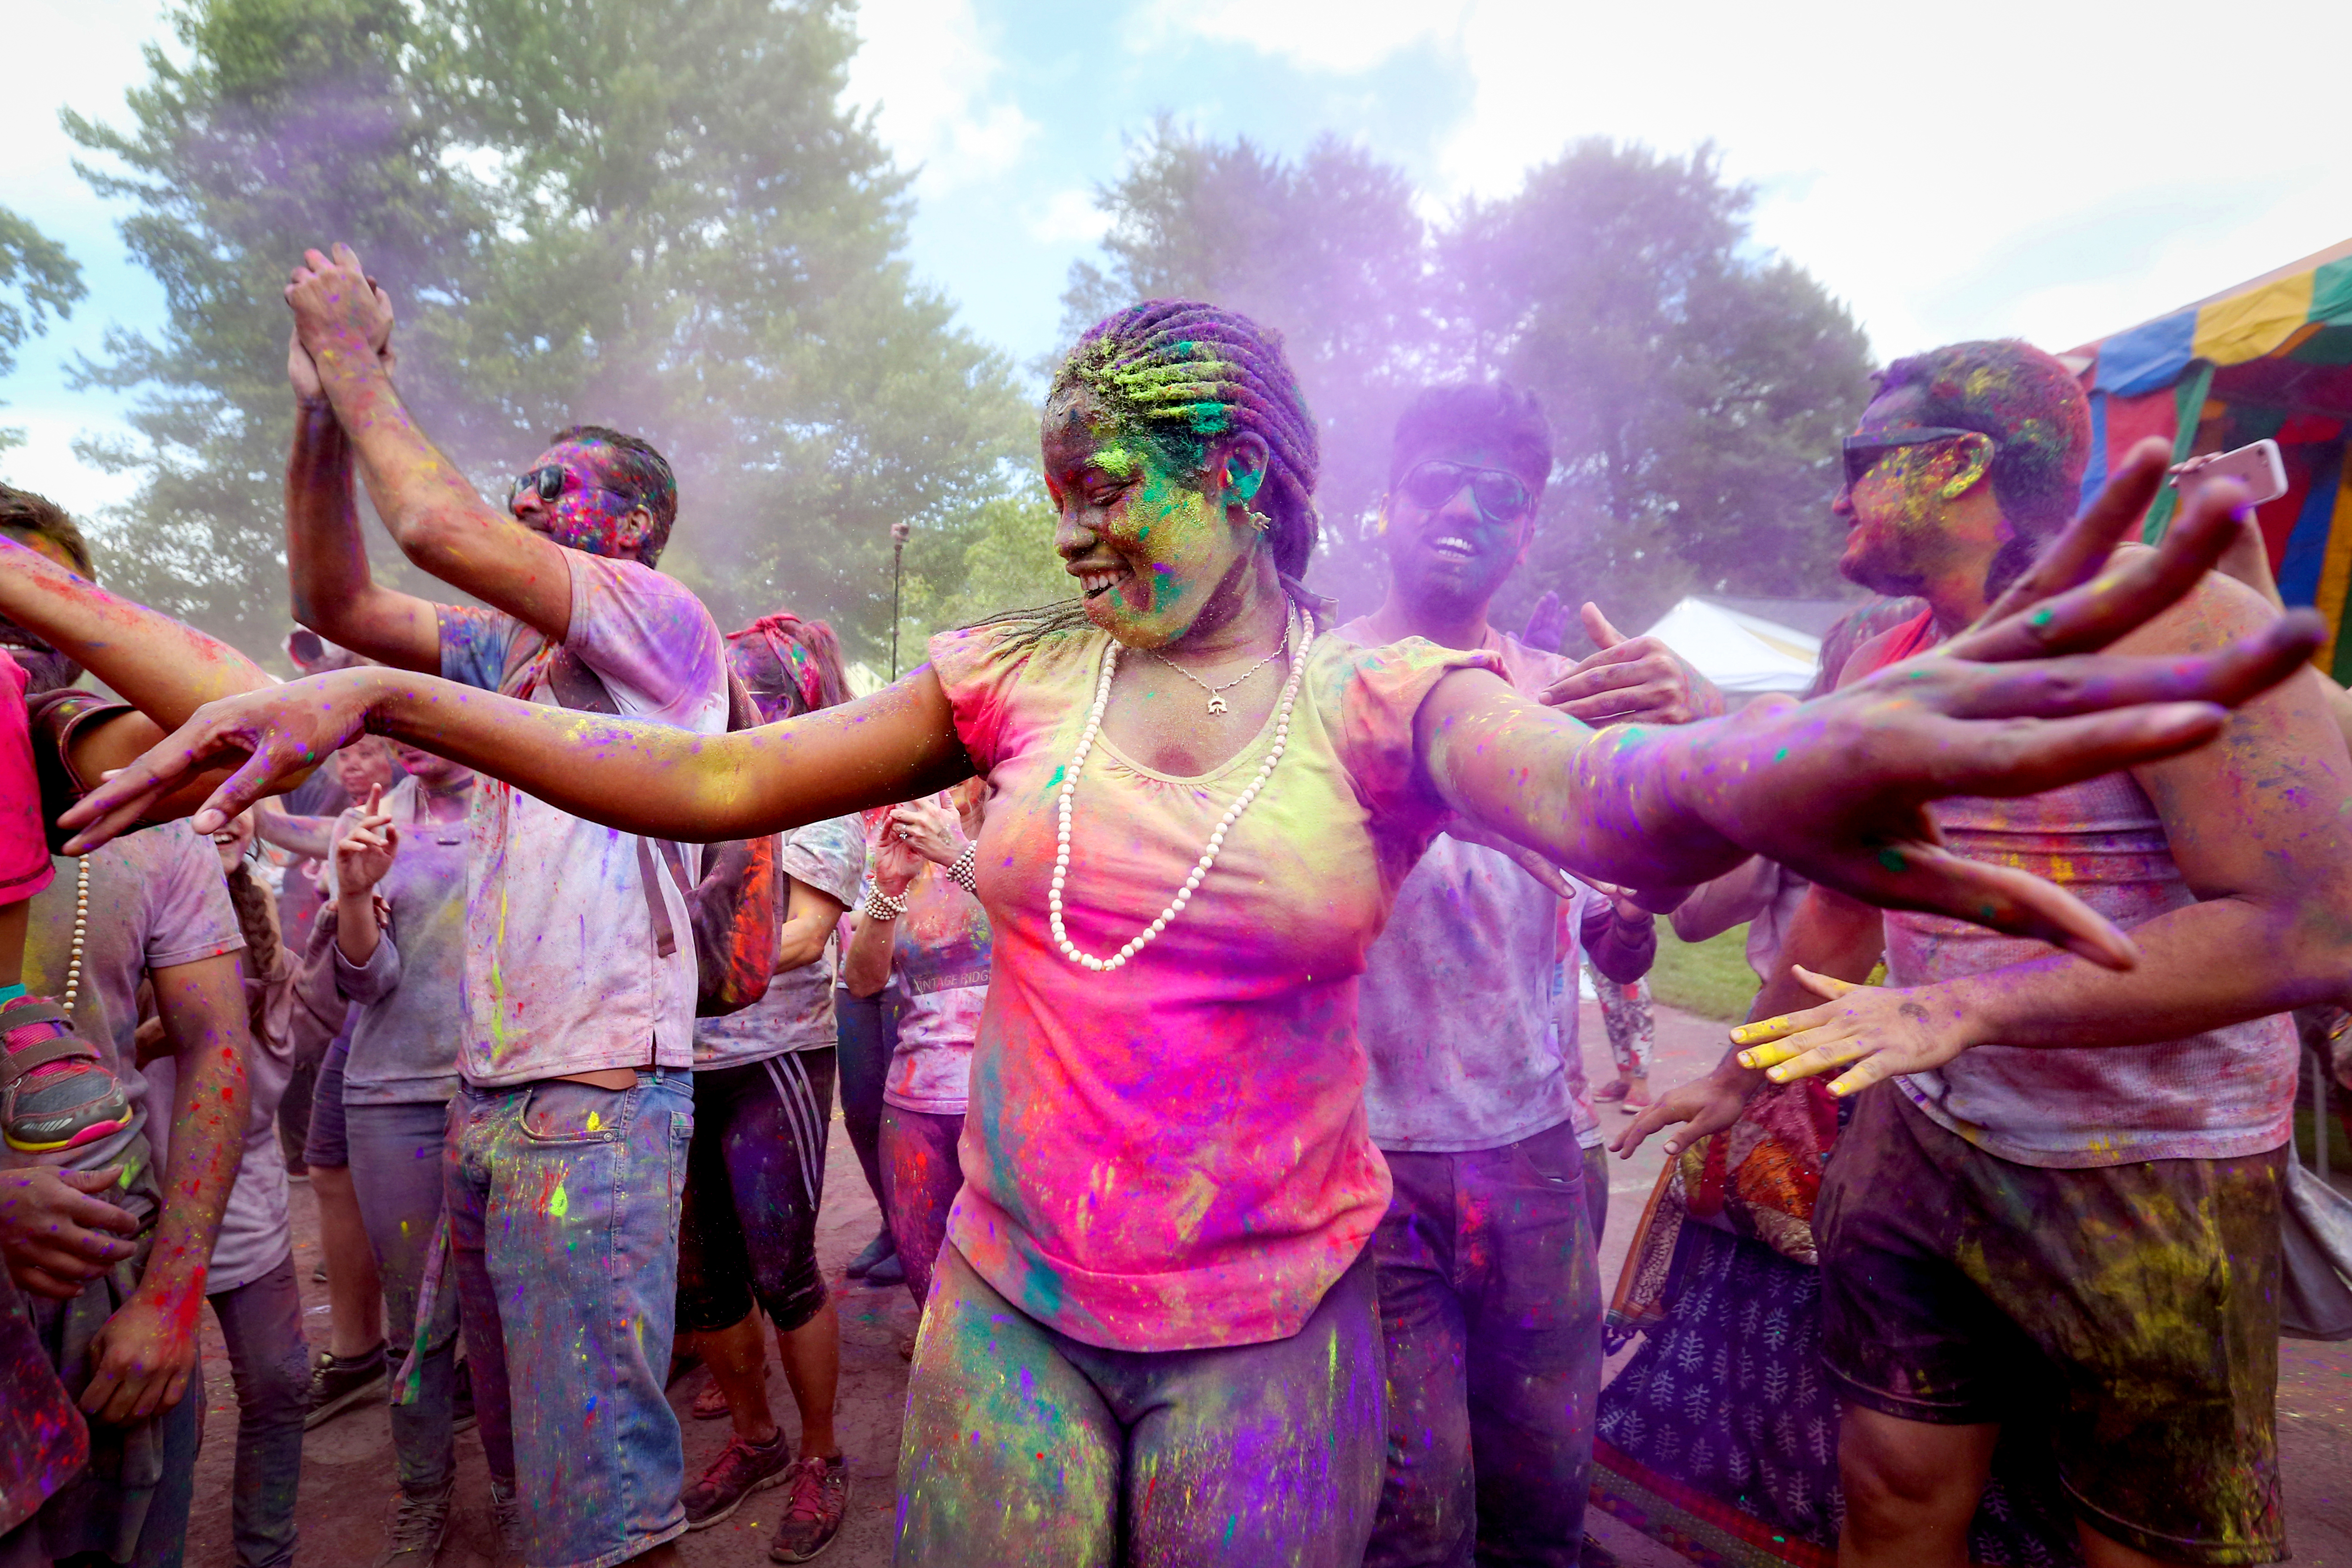 May, 2017. A woman dances in brightly colored powder at Holi.{&amp;nbsp;} (Amanda Andrade-Rhoades/DC Refined)<p></p>